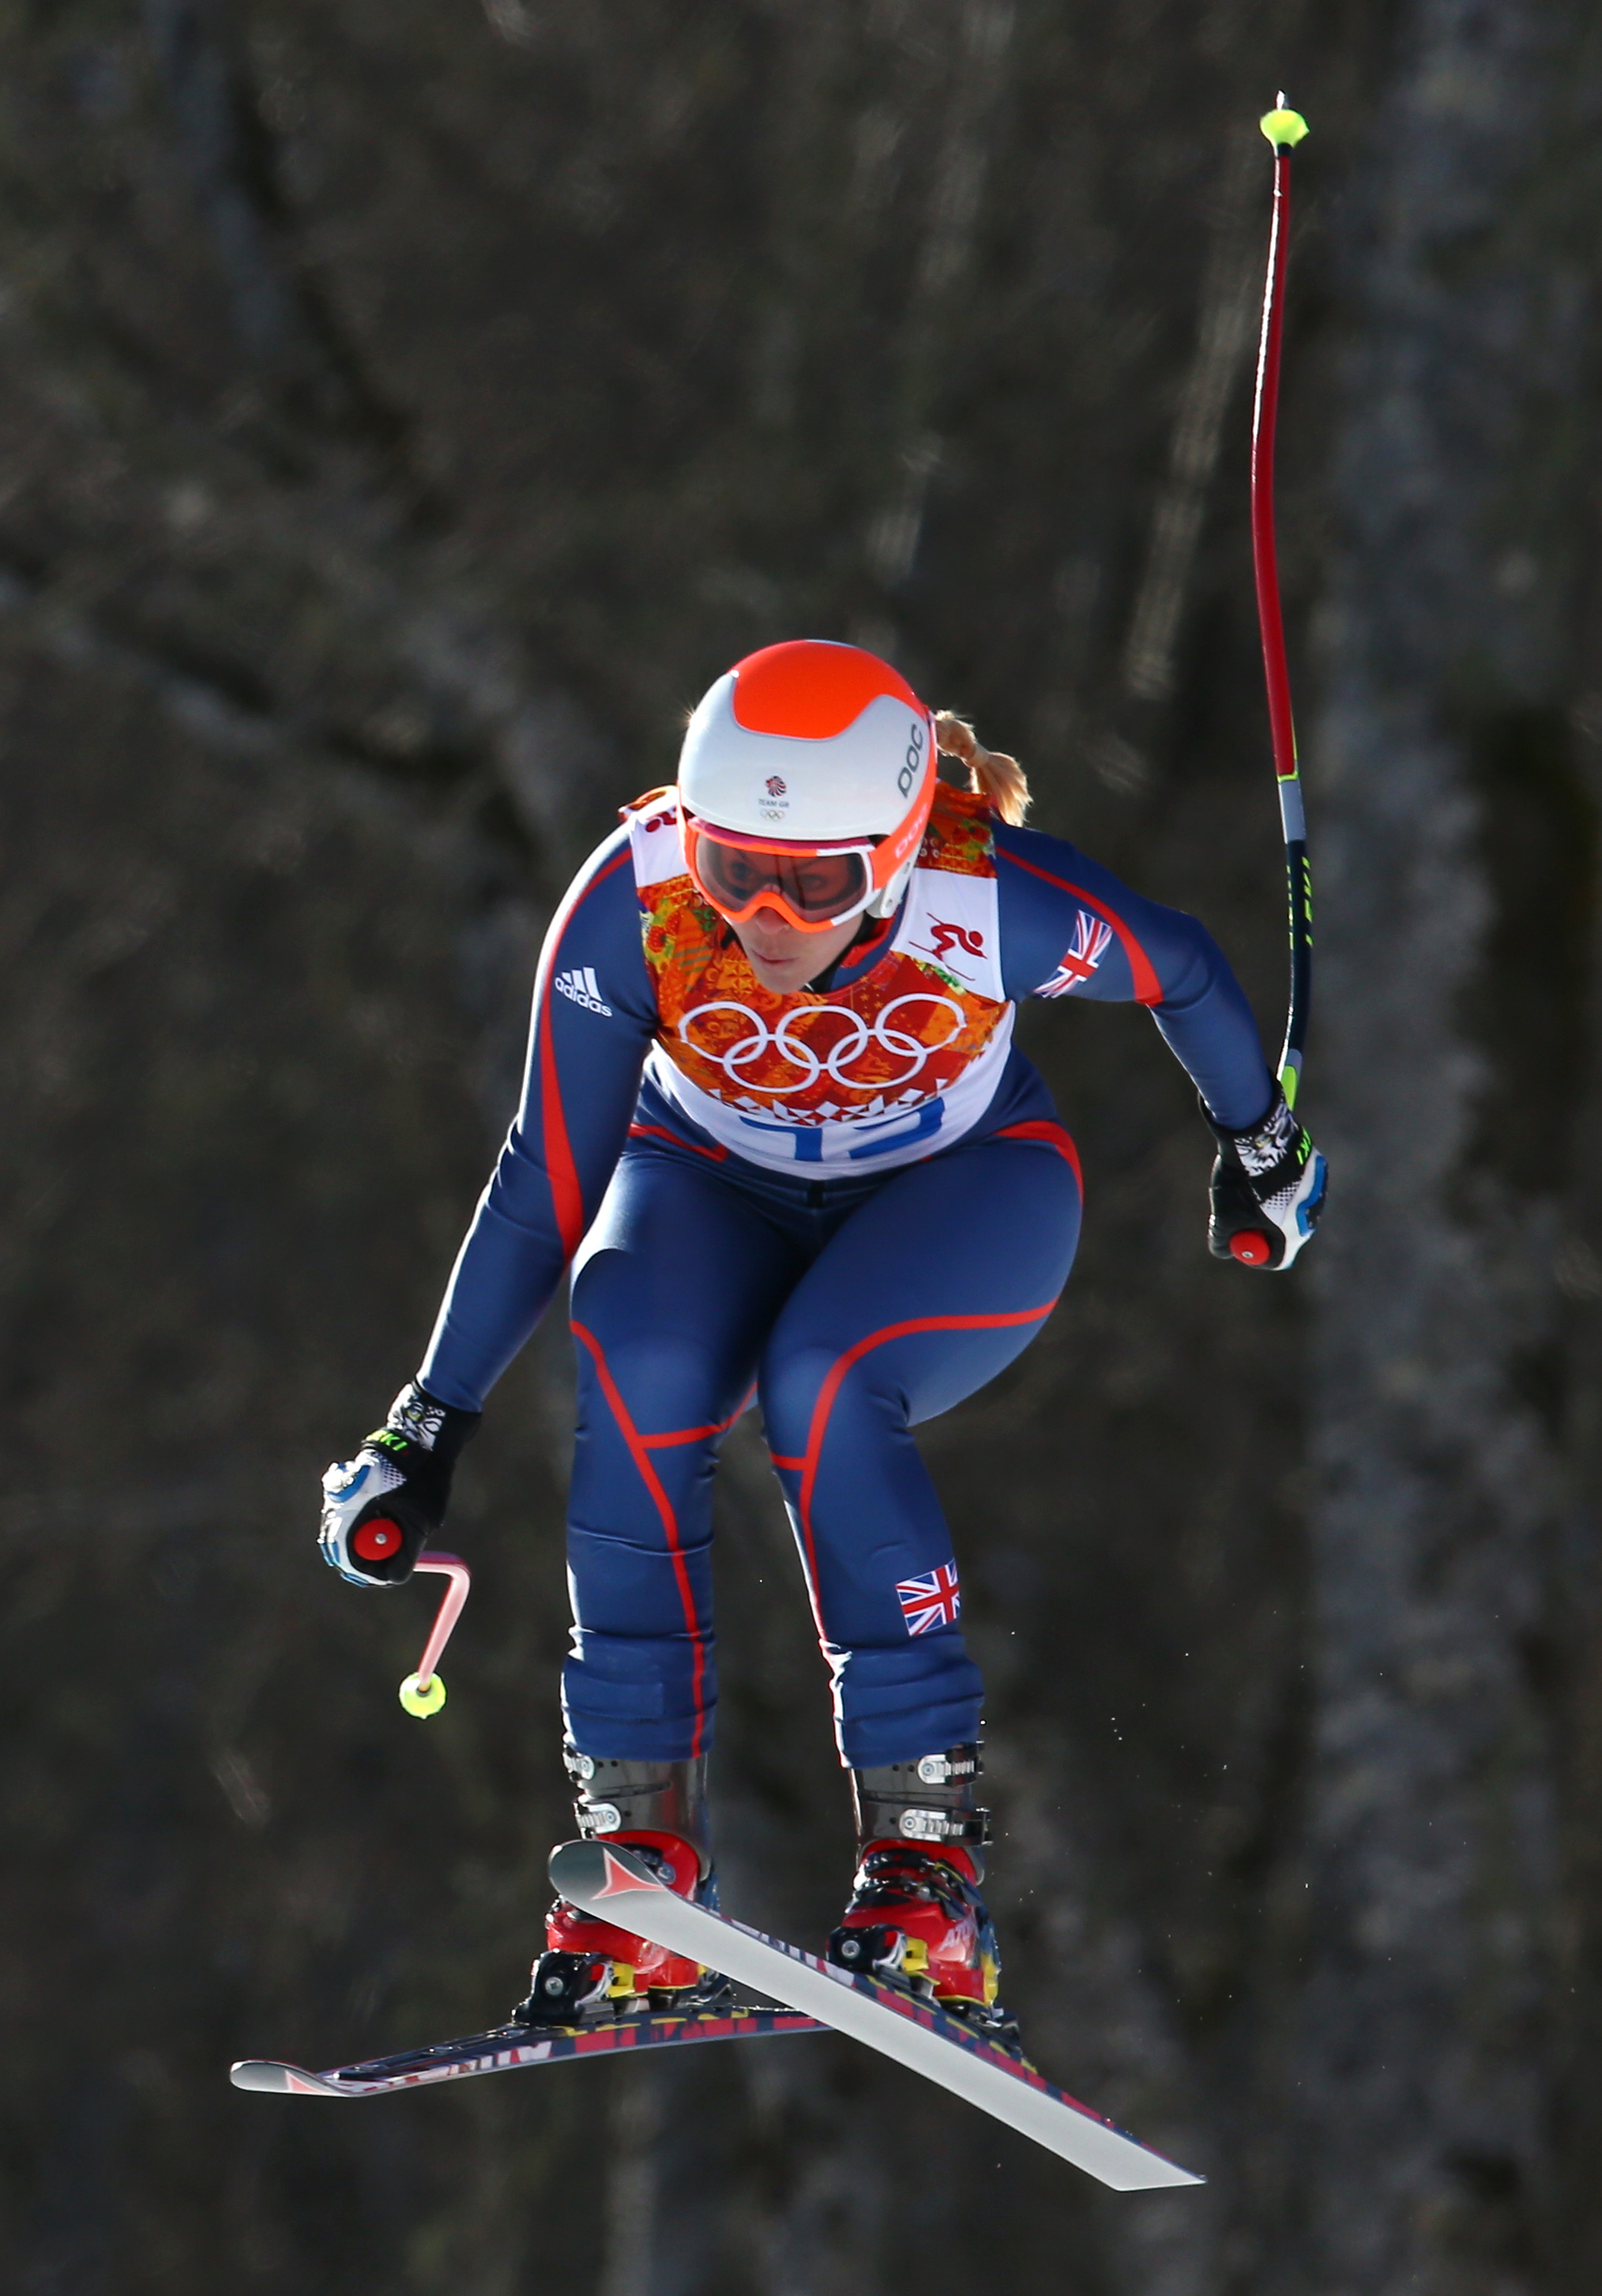 Britain's Chemmy Alcott makes a jump during the women's downhill at the Sochi 2014 Winter Olympics, Wednesday, Feb. 12, 2014, in Krasnaya Polyana, Russia. (AP Photo/Alessandro Trovati)